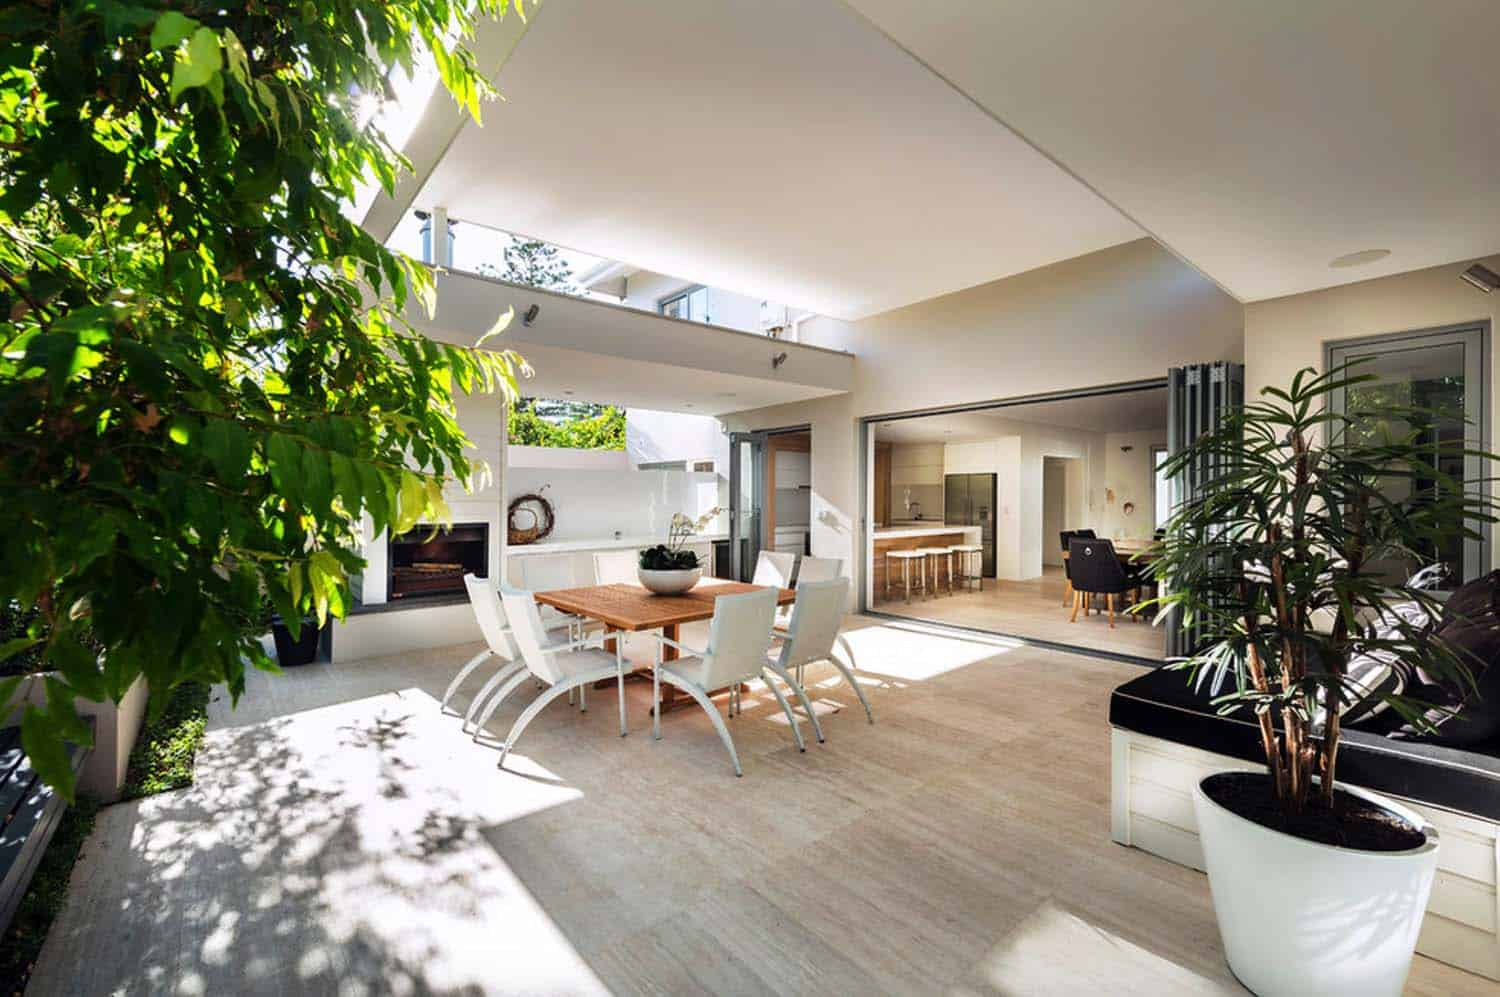 Renovated australian home celebrates a relaxed beachside lifestyle - Plans houses terrace enjoy relaxed lifestyle ...